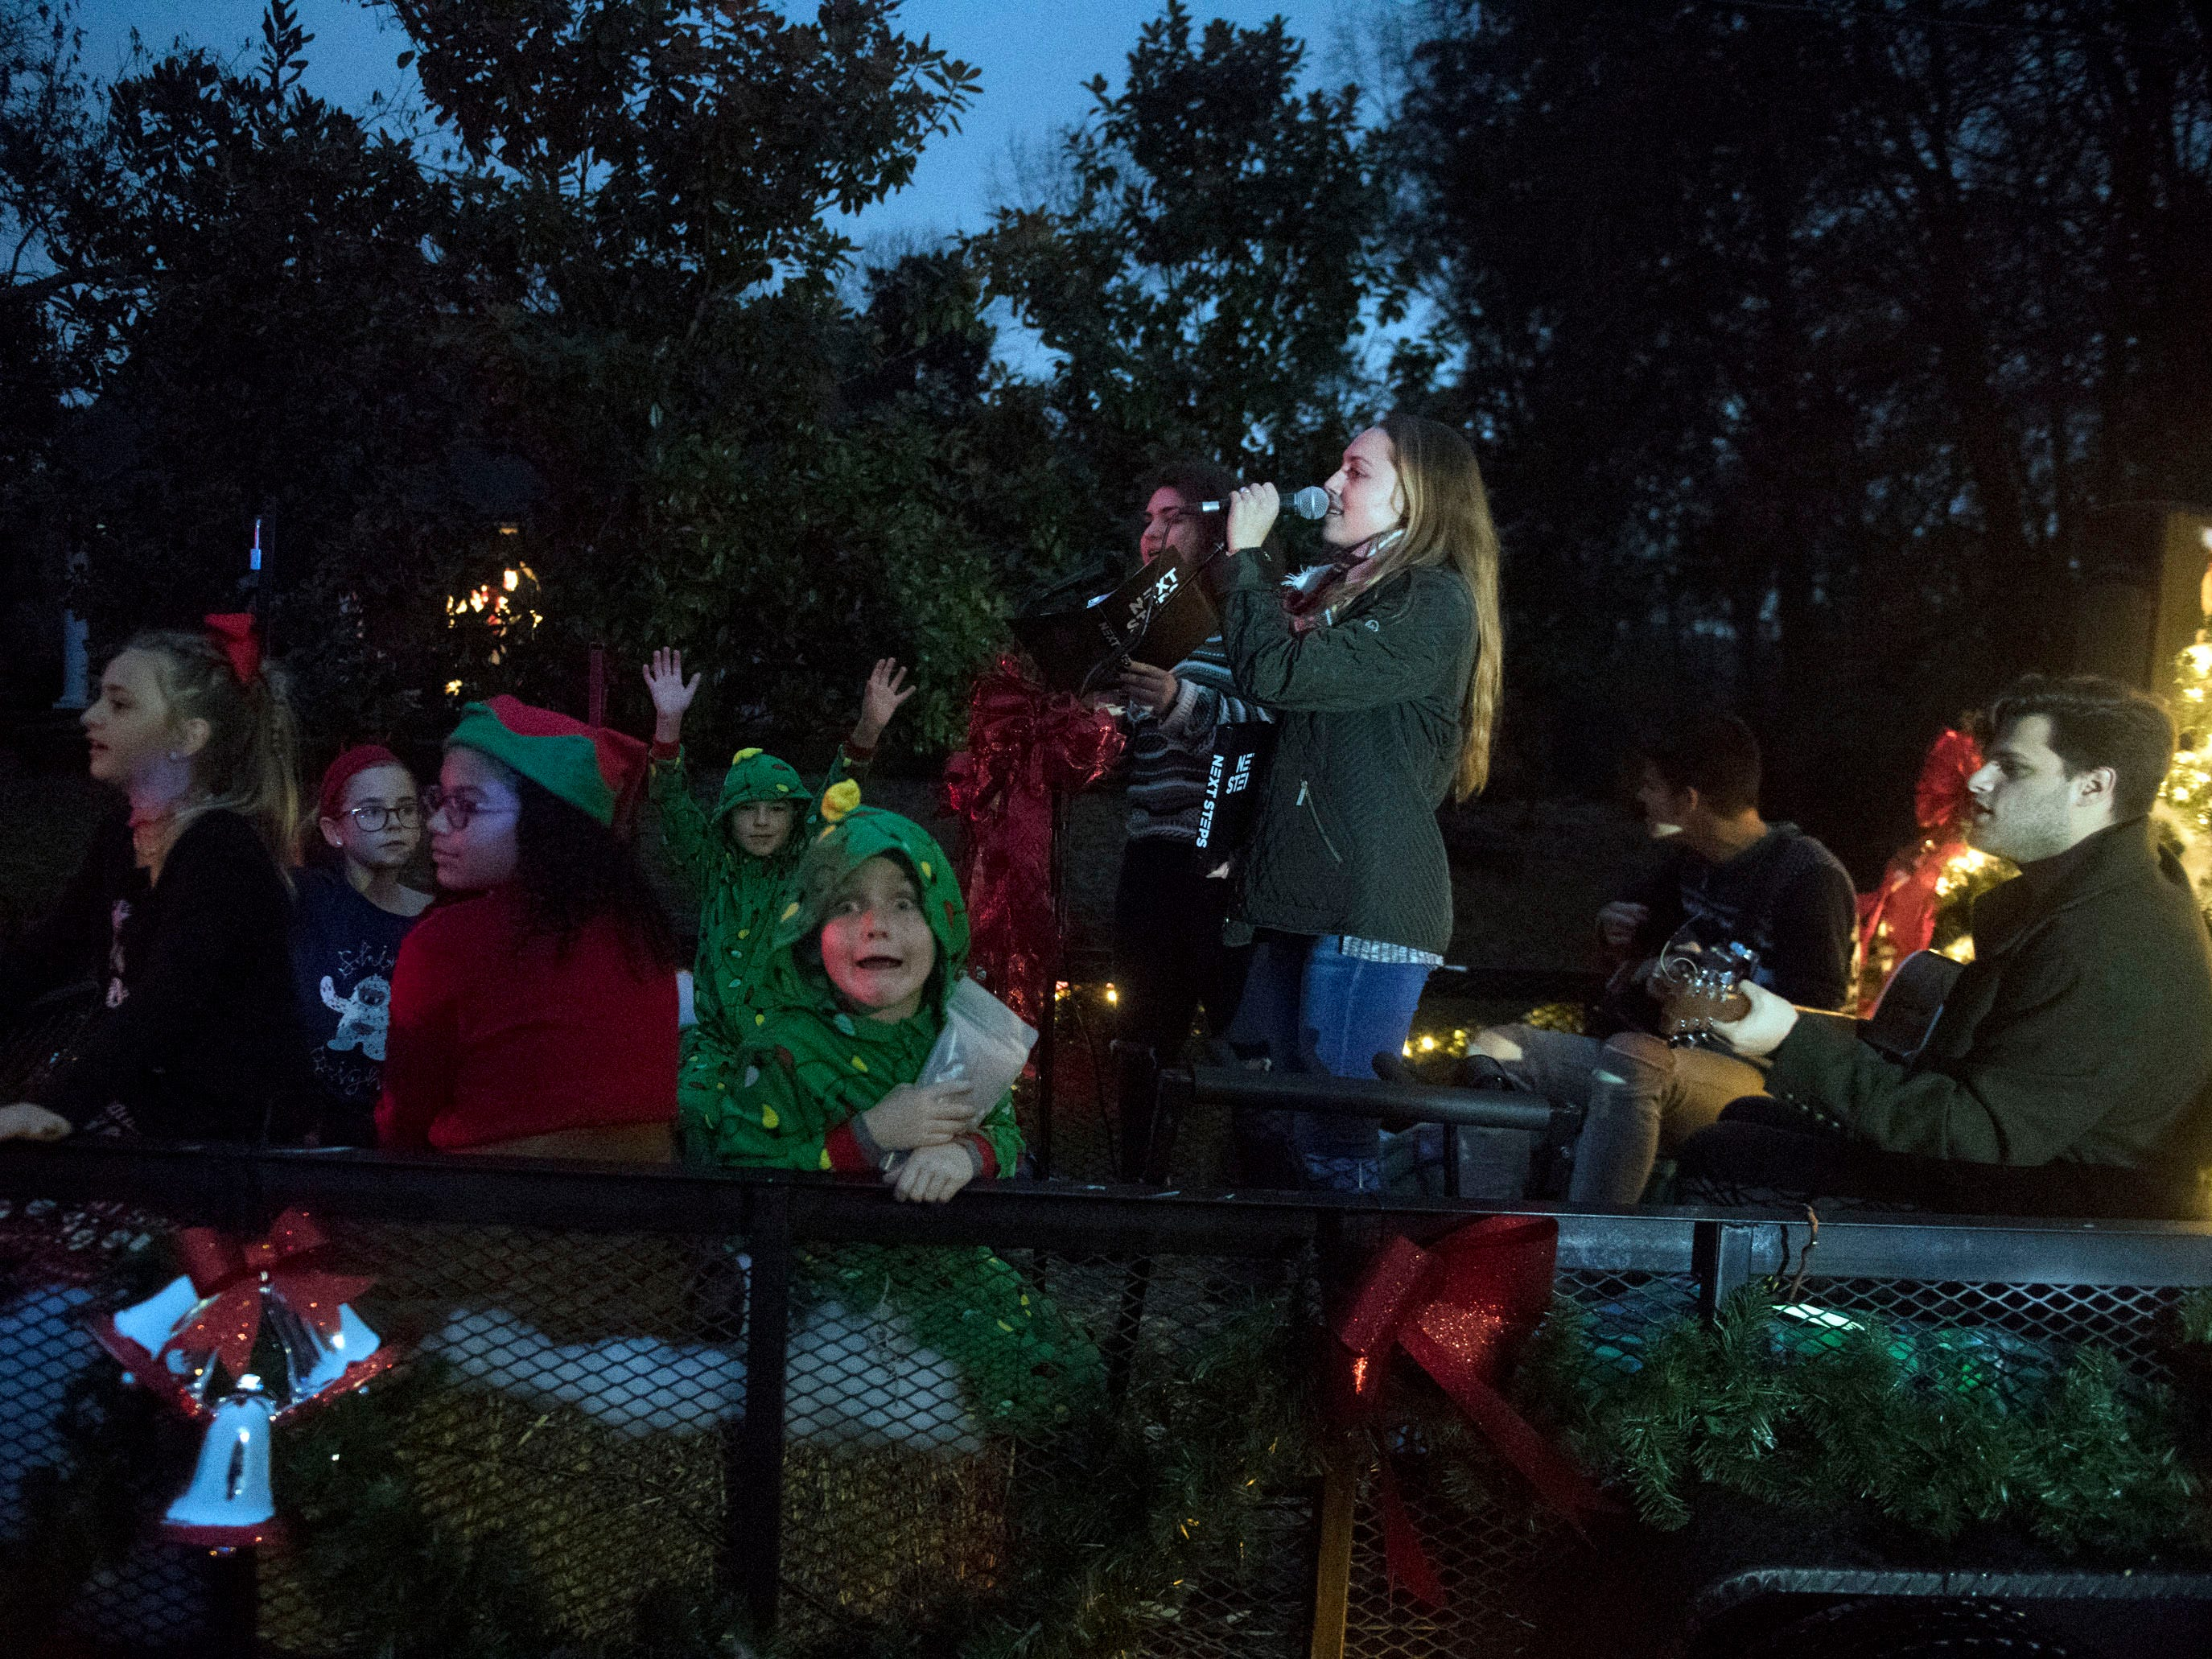 Faith Promise Church at the Powell Lions Club Christmas Parade on Saturday, December 1, 2018.